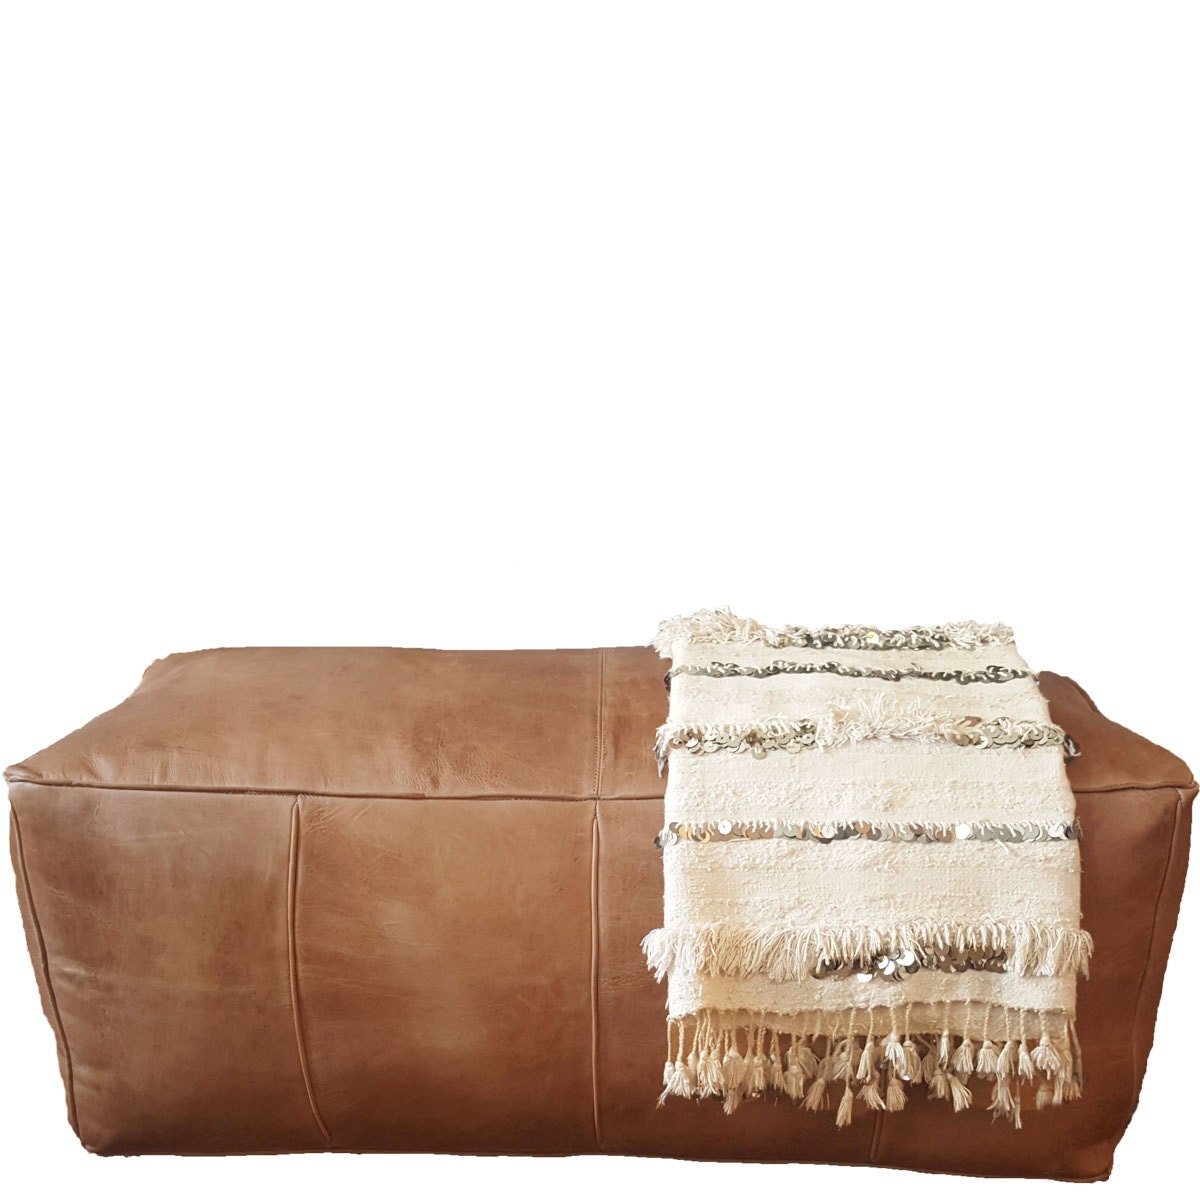 Long Leather Pouf Ottoman natural brown leather rectangle